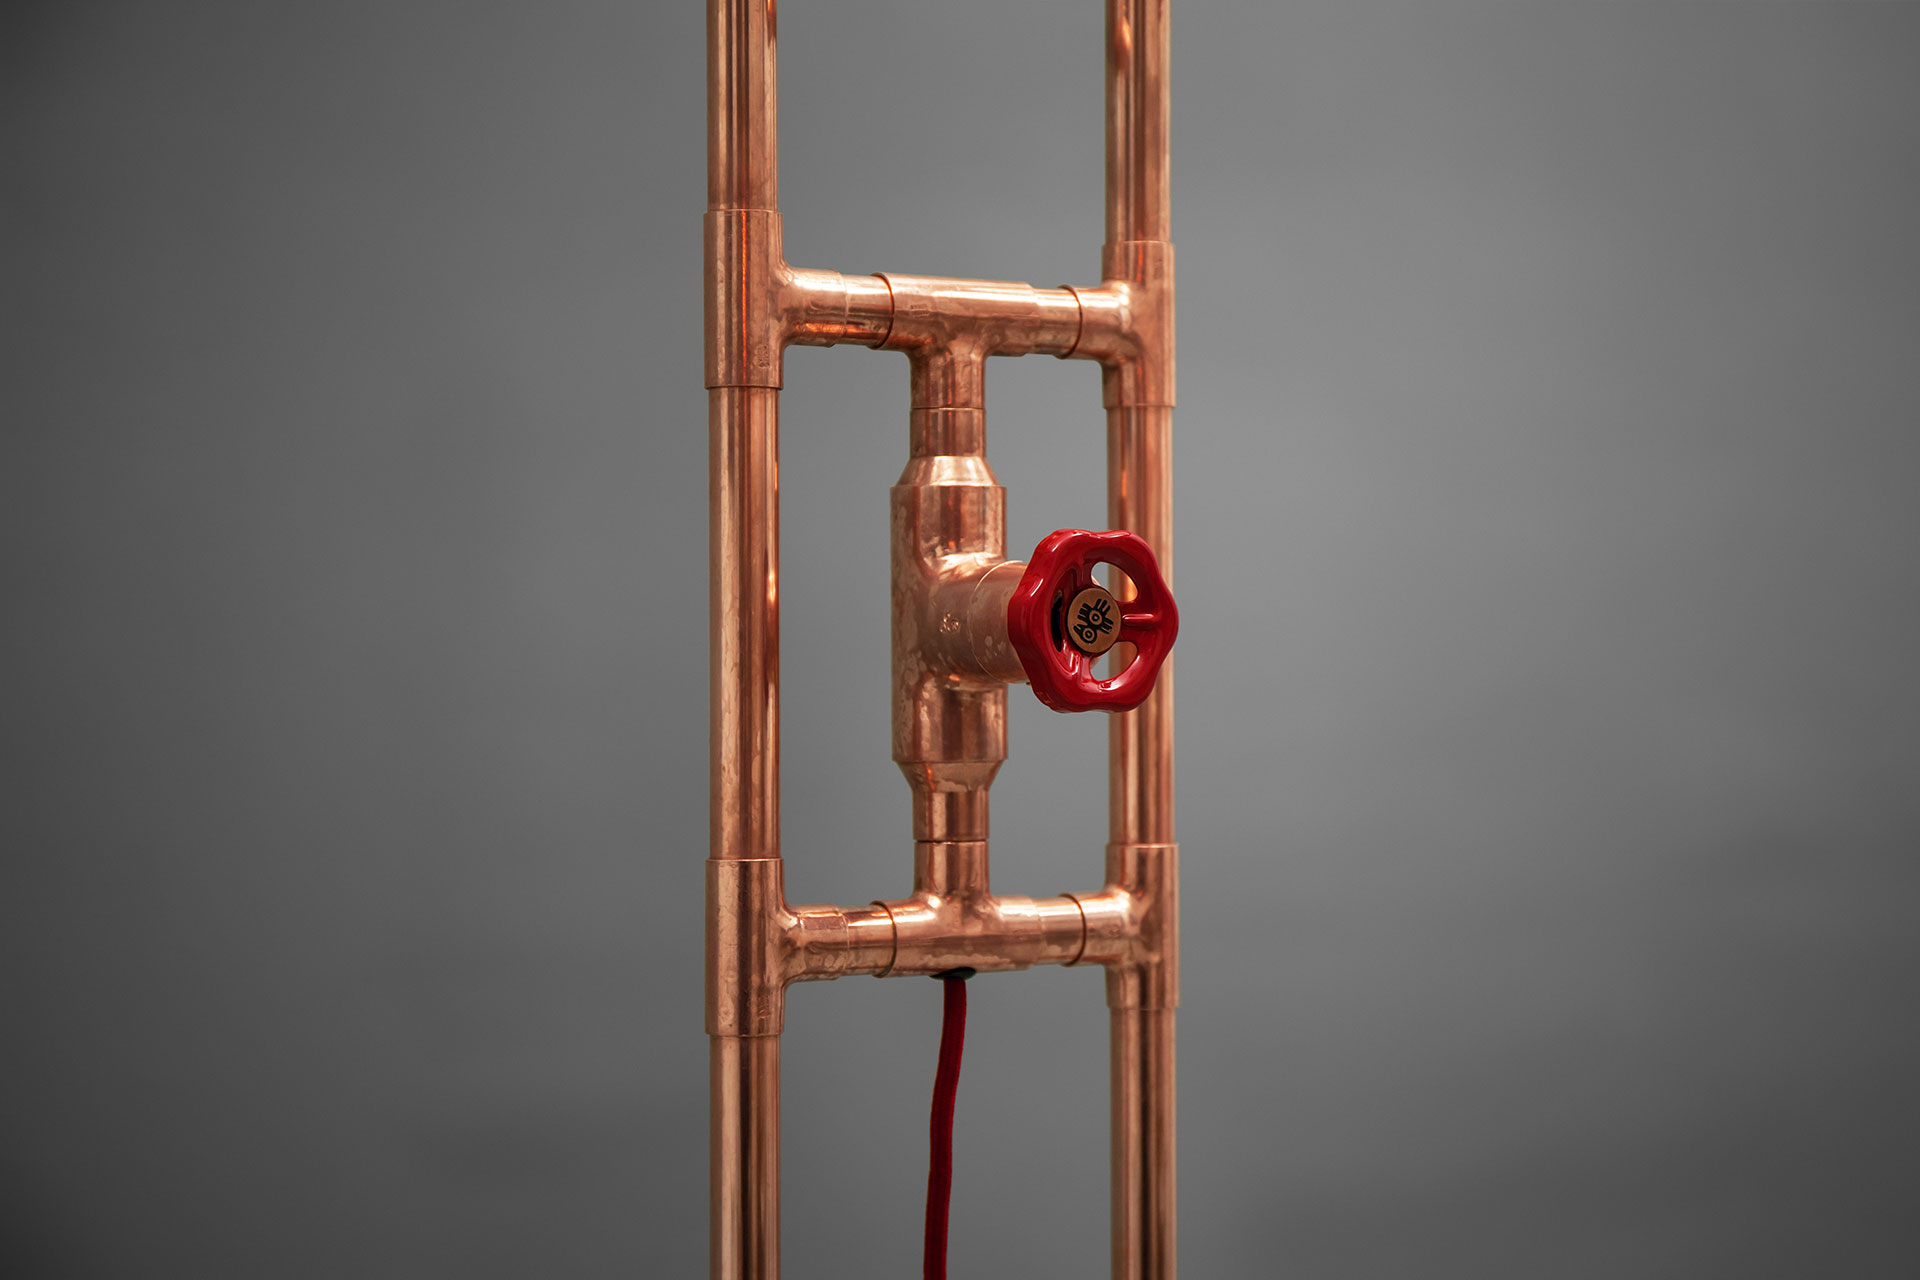 Red knob dimmer in loft style floor lamp made of copper tubing